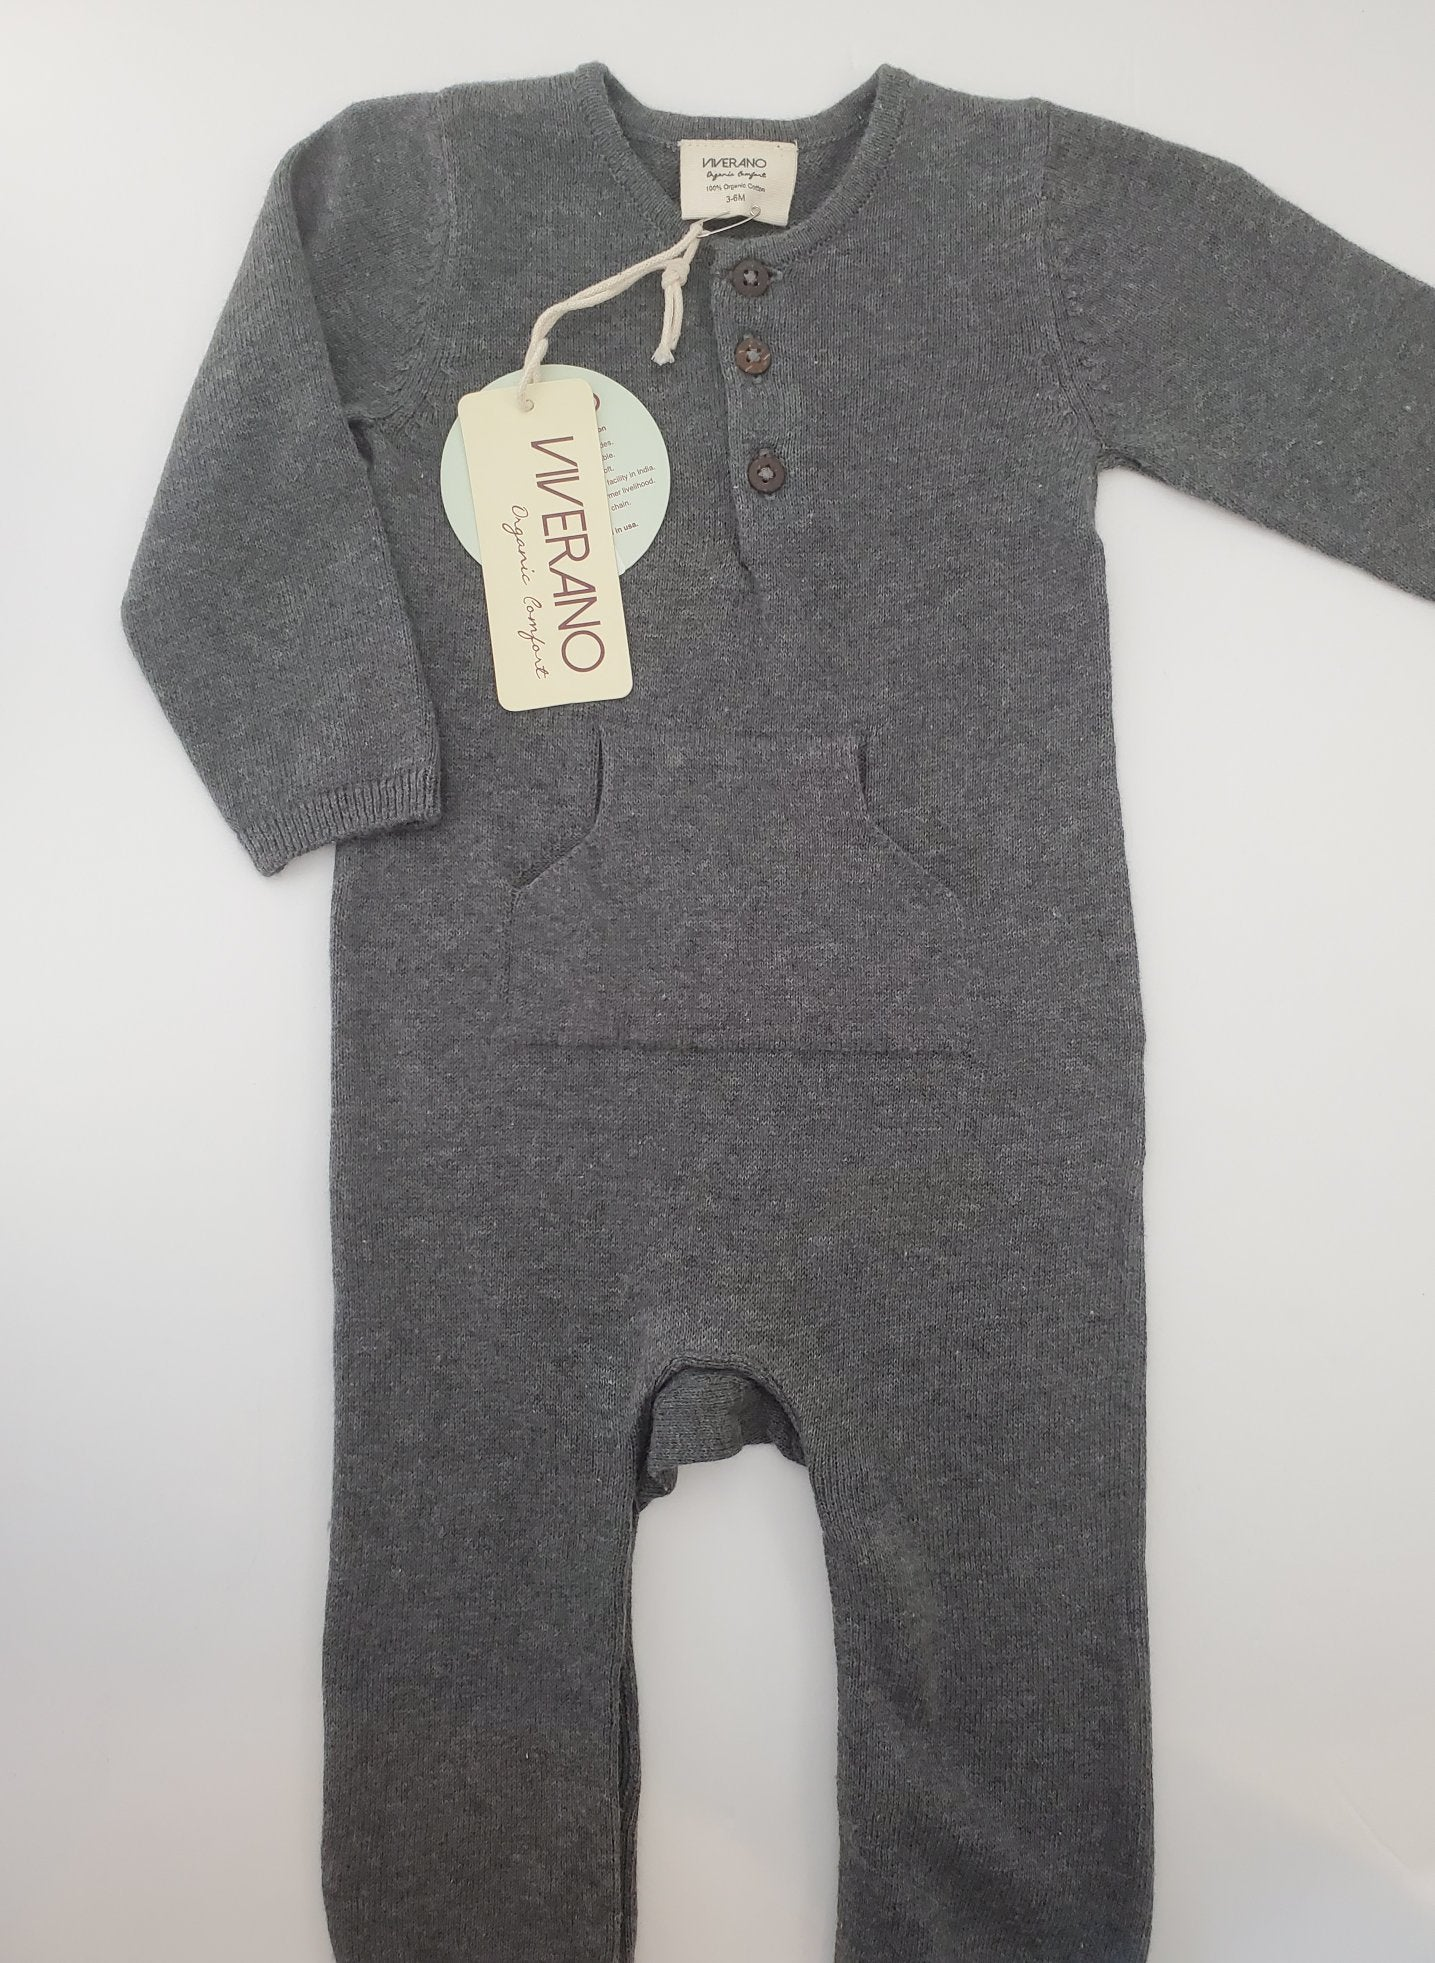 Viverano Milan Knit Kangaroo Pocket Coverall Romper - Grey